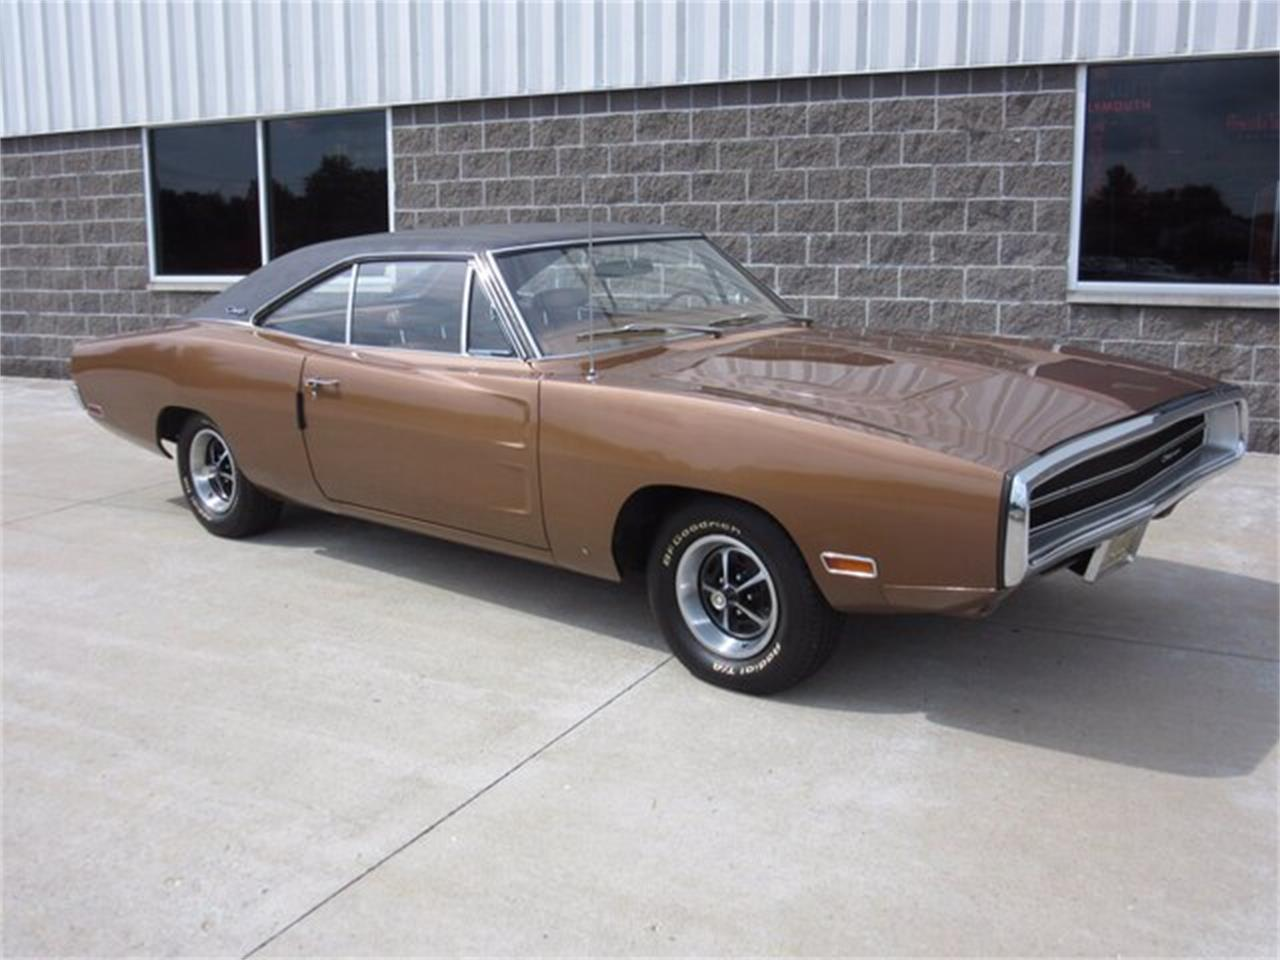 for sale 1970 dodge charger in greenwood, indiana cars - greenwood, in at geebo